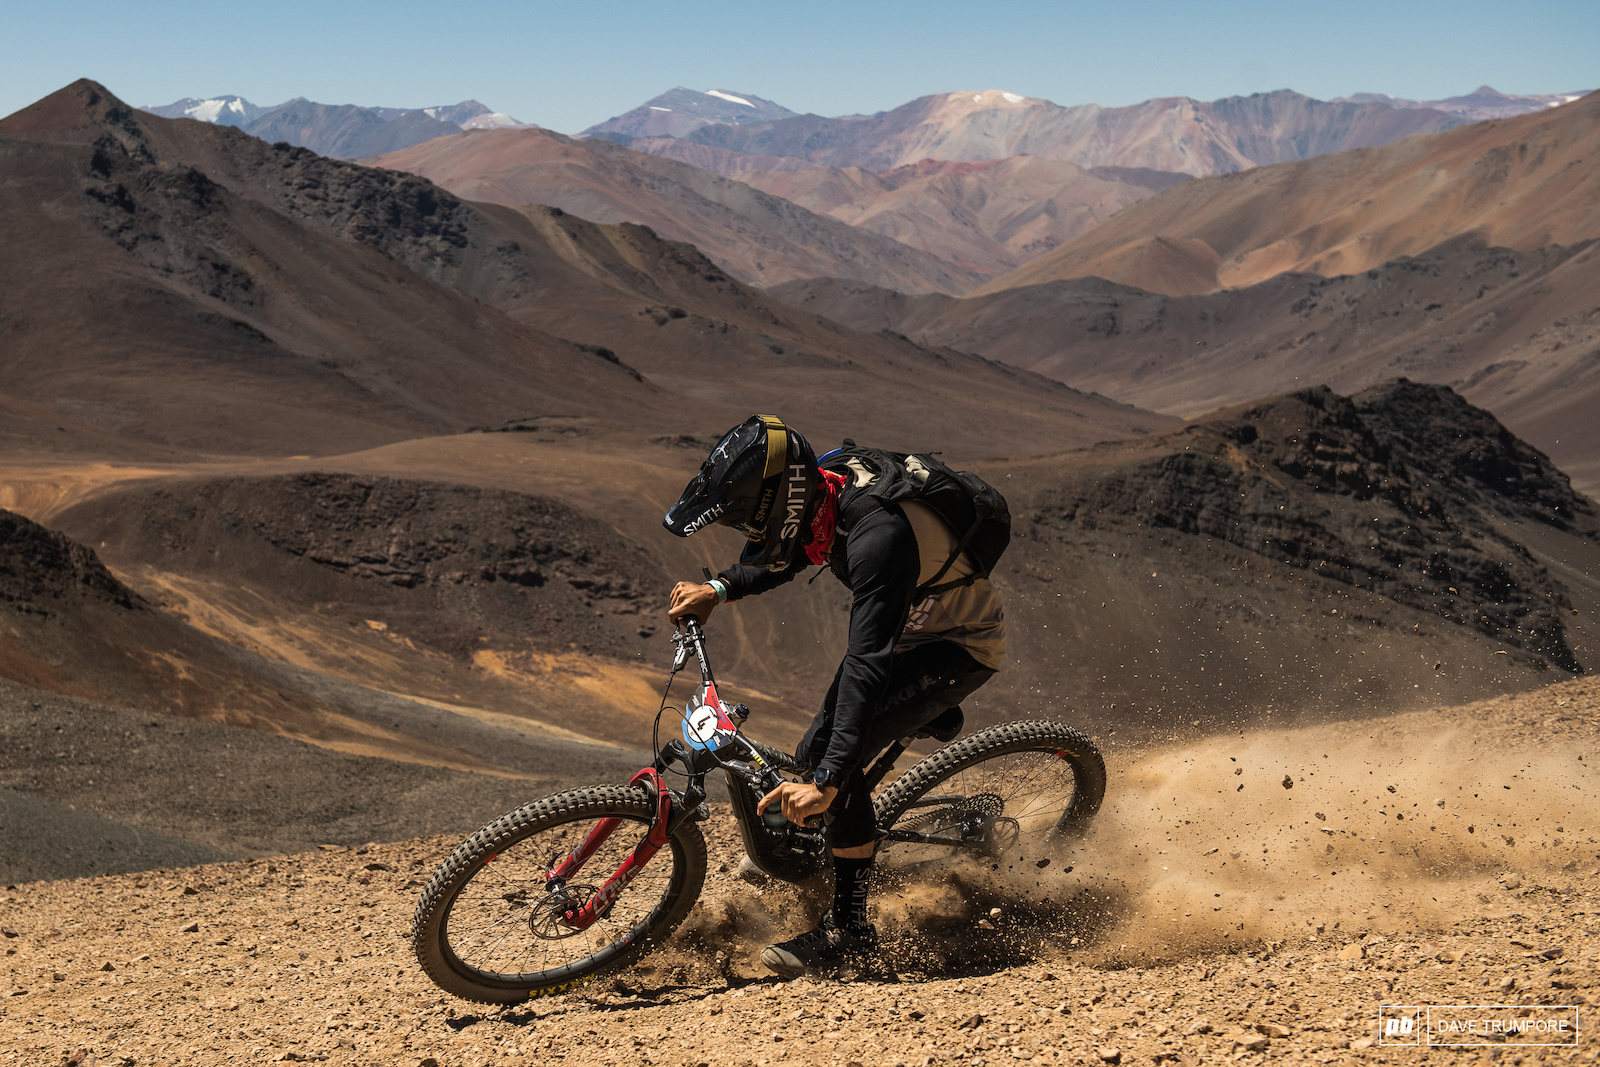 Iago Garay loves the loose surface here in Chile and currently sits 3rd